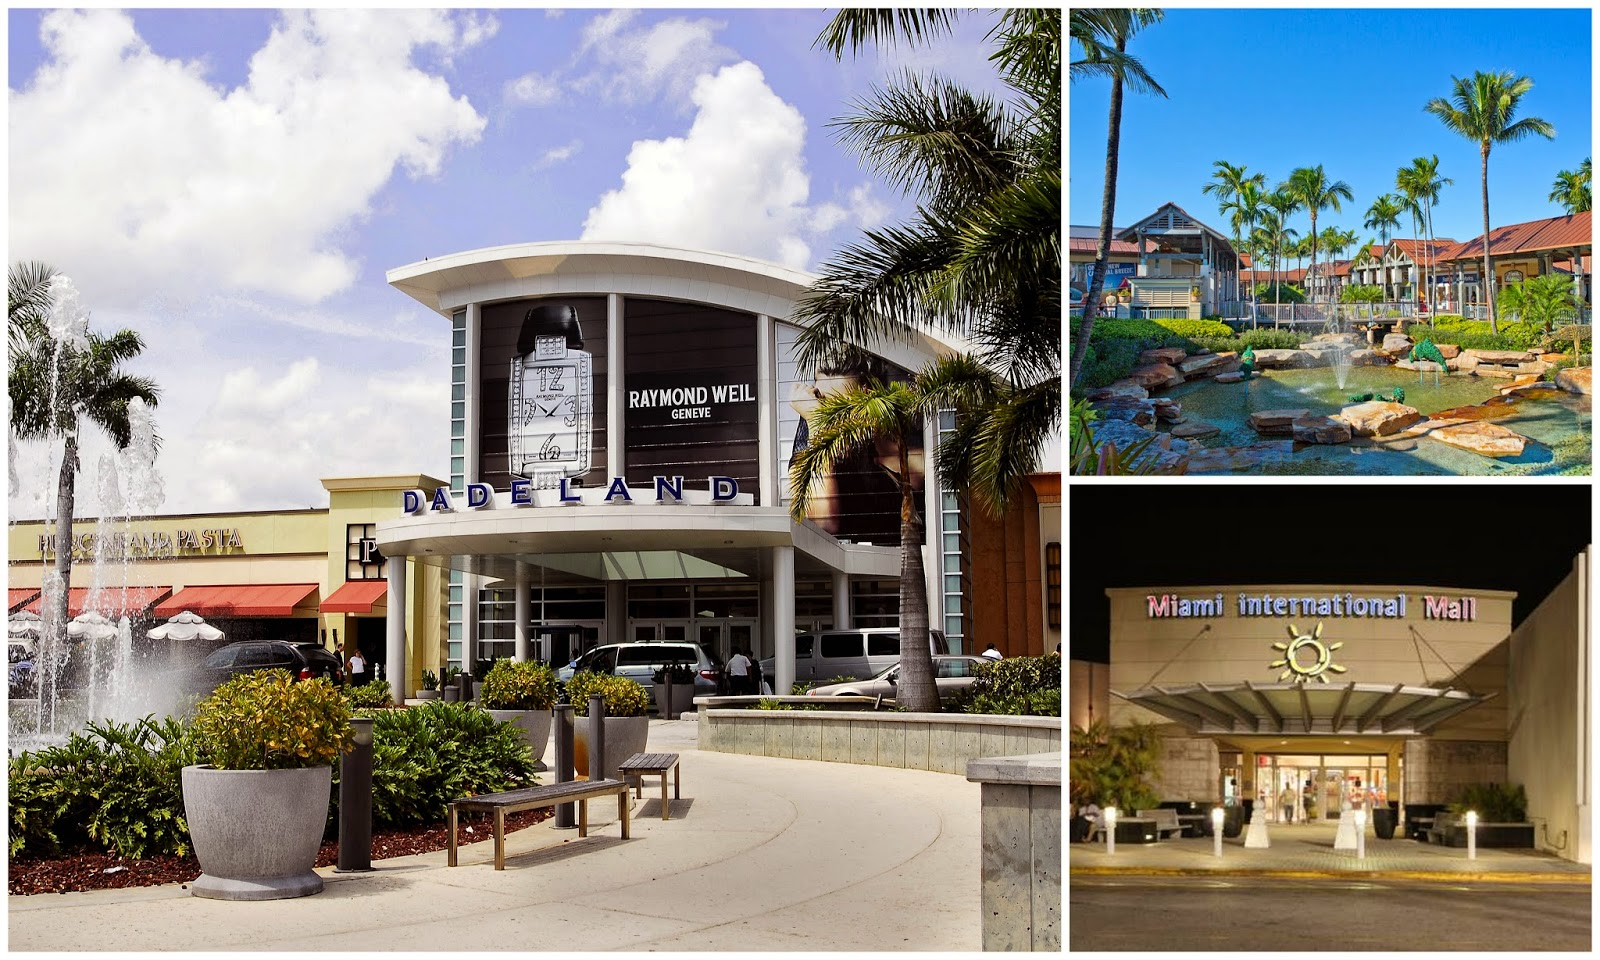 Miami-area Malls to celebrate Mother's Day during 'Indulge: Fashion + Fun for Moms'